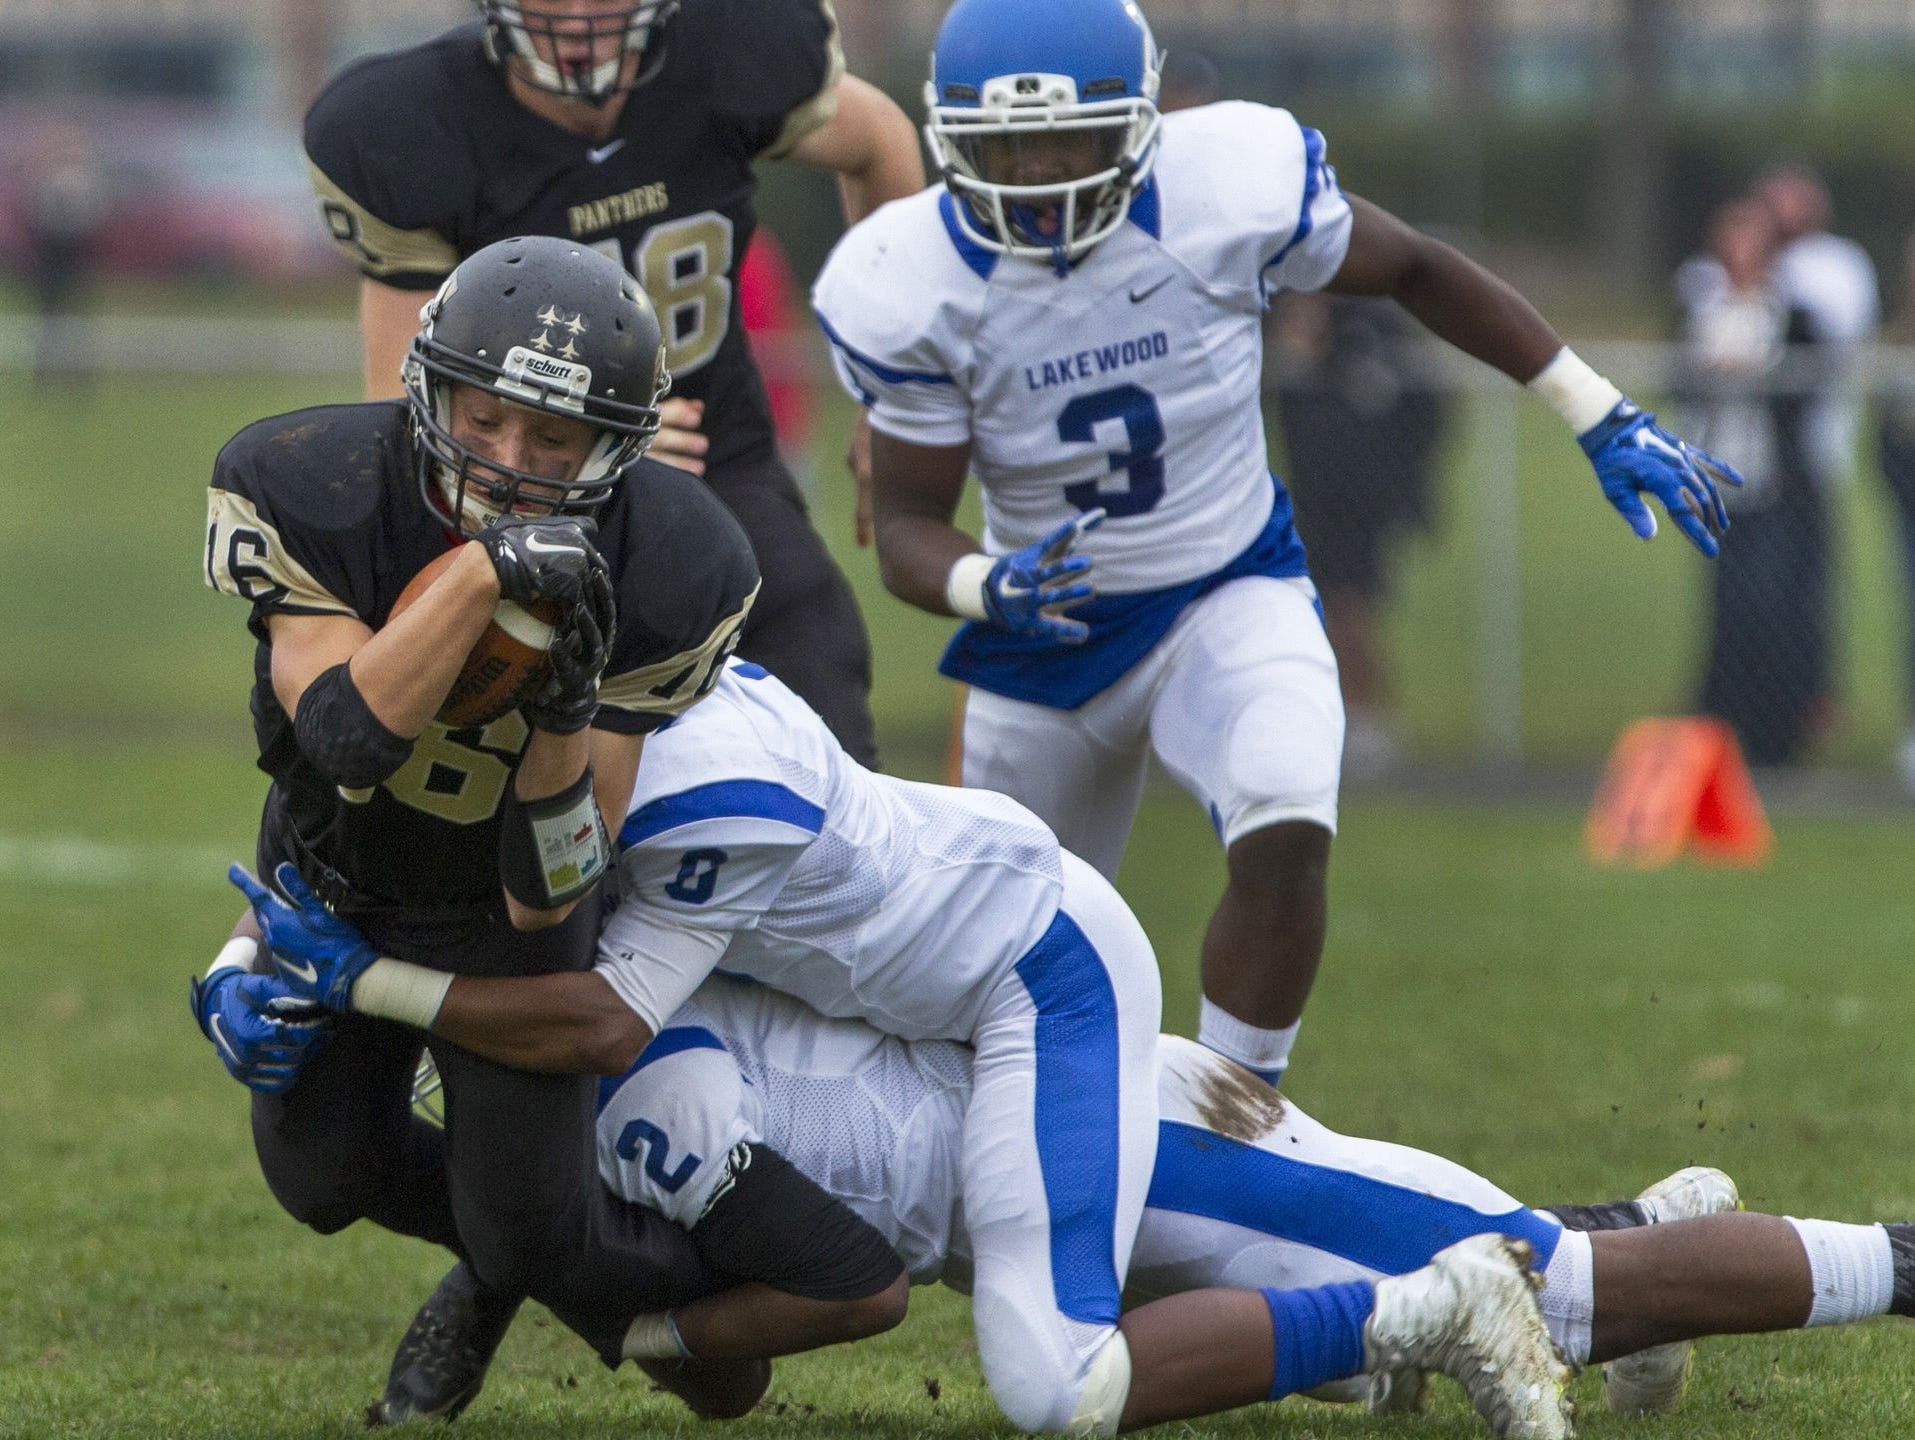 The Class B south football title was decided on Nov. 7